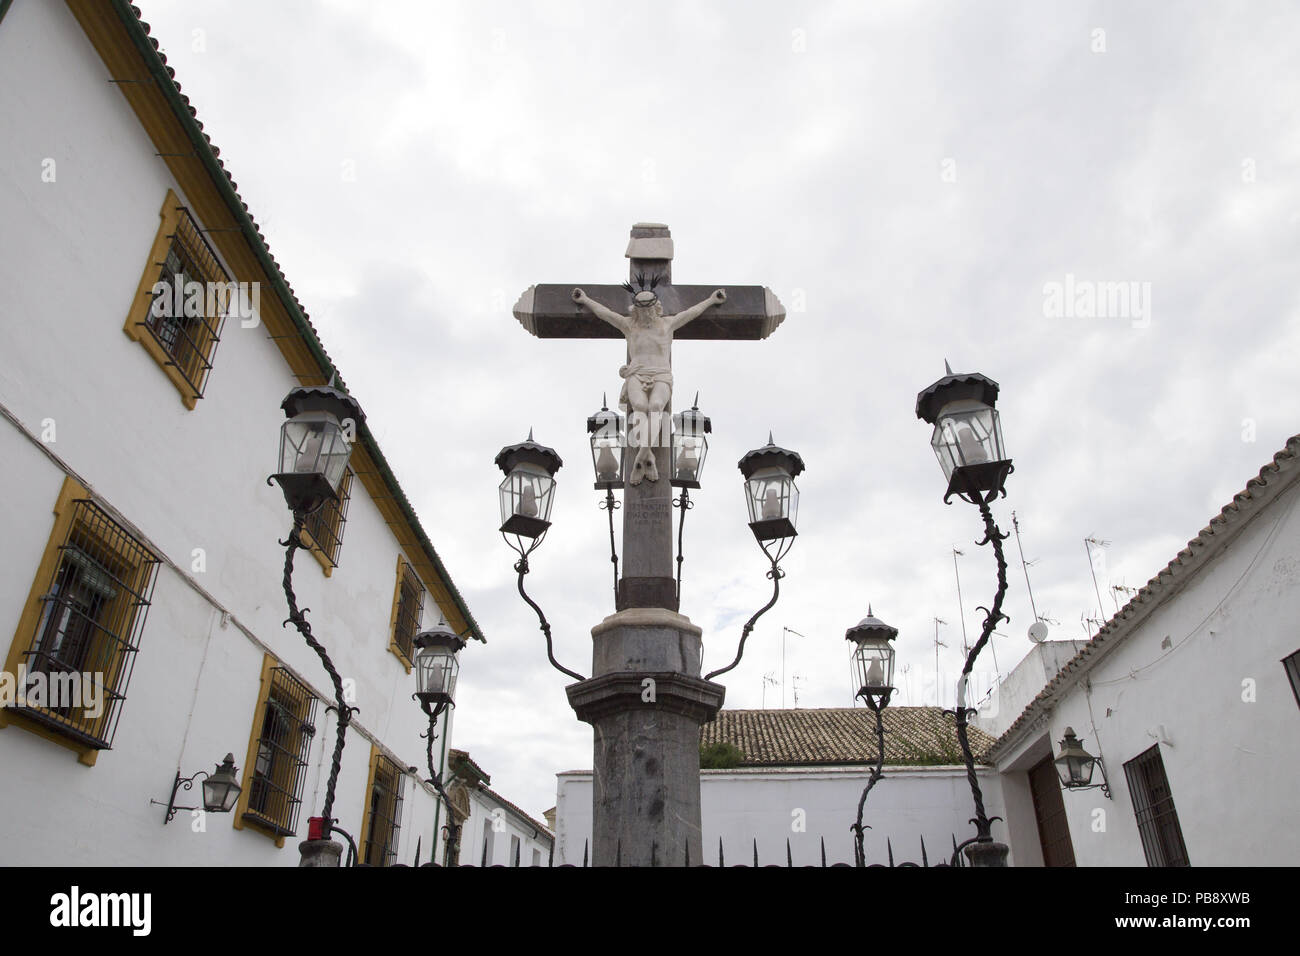 June 10, 2018 - CóRdoba, Spain - Christ of the Lanterns of day.Córdoba was the capital of the Later Hispania in the times of the Roman Republic, or of the Bética province during the Roman Empire and the Caliphate of Córdoba during the Muslim era. Credit: Lito Lizana/SOPA Images/ZUMA Wire/Alamy Live News Stock Photo